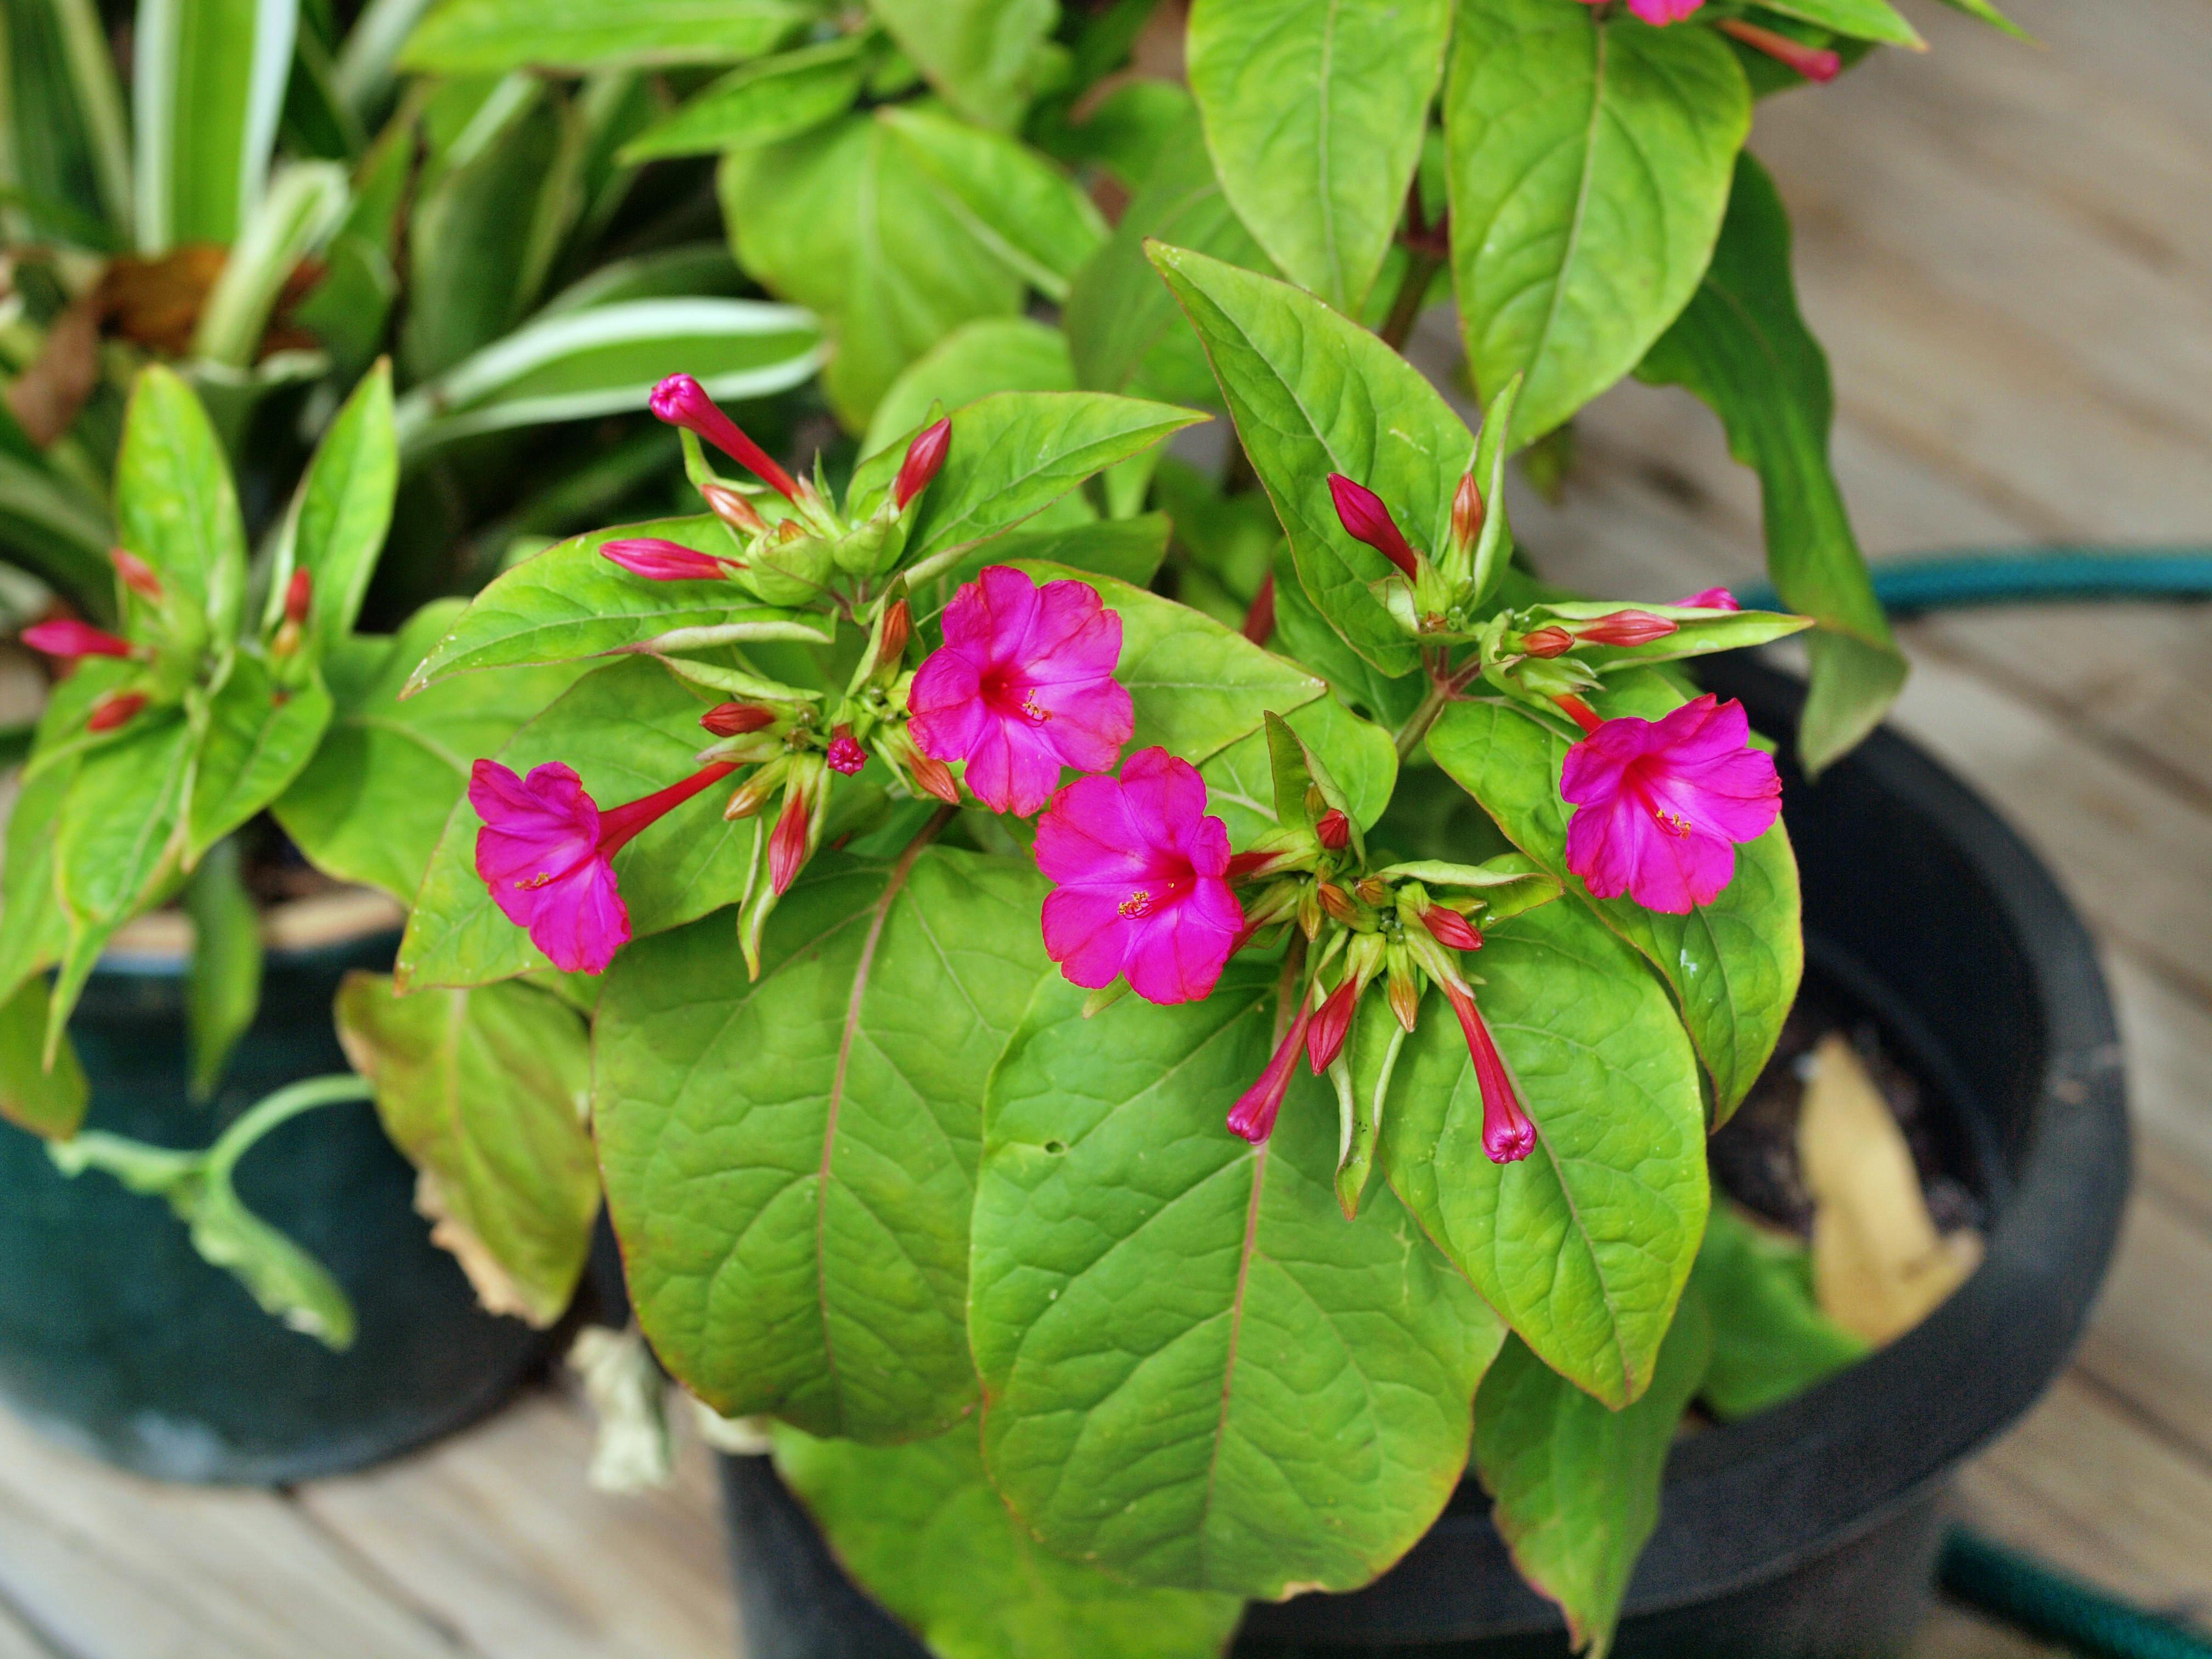 This should be Mirabilis-jalapa-1.jpeg.  Is it missing?